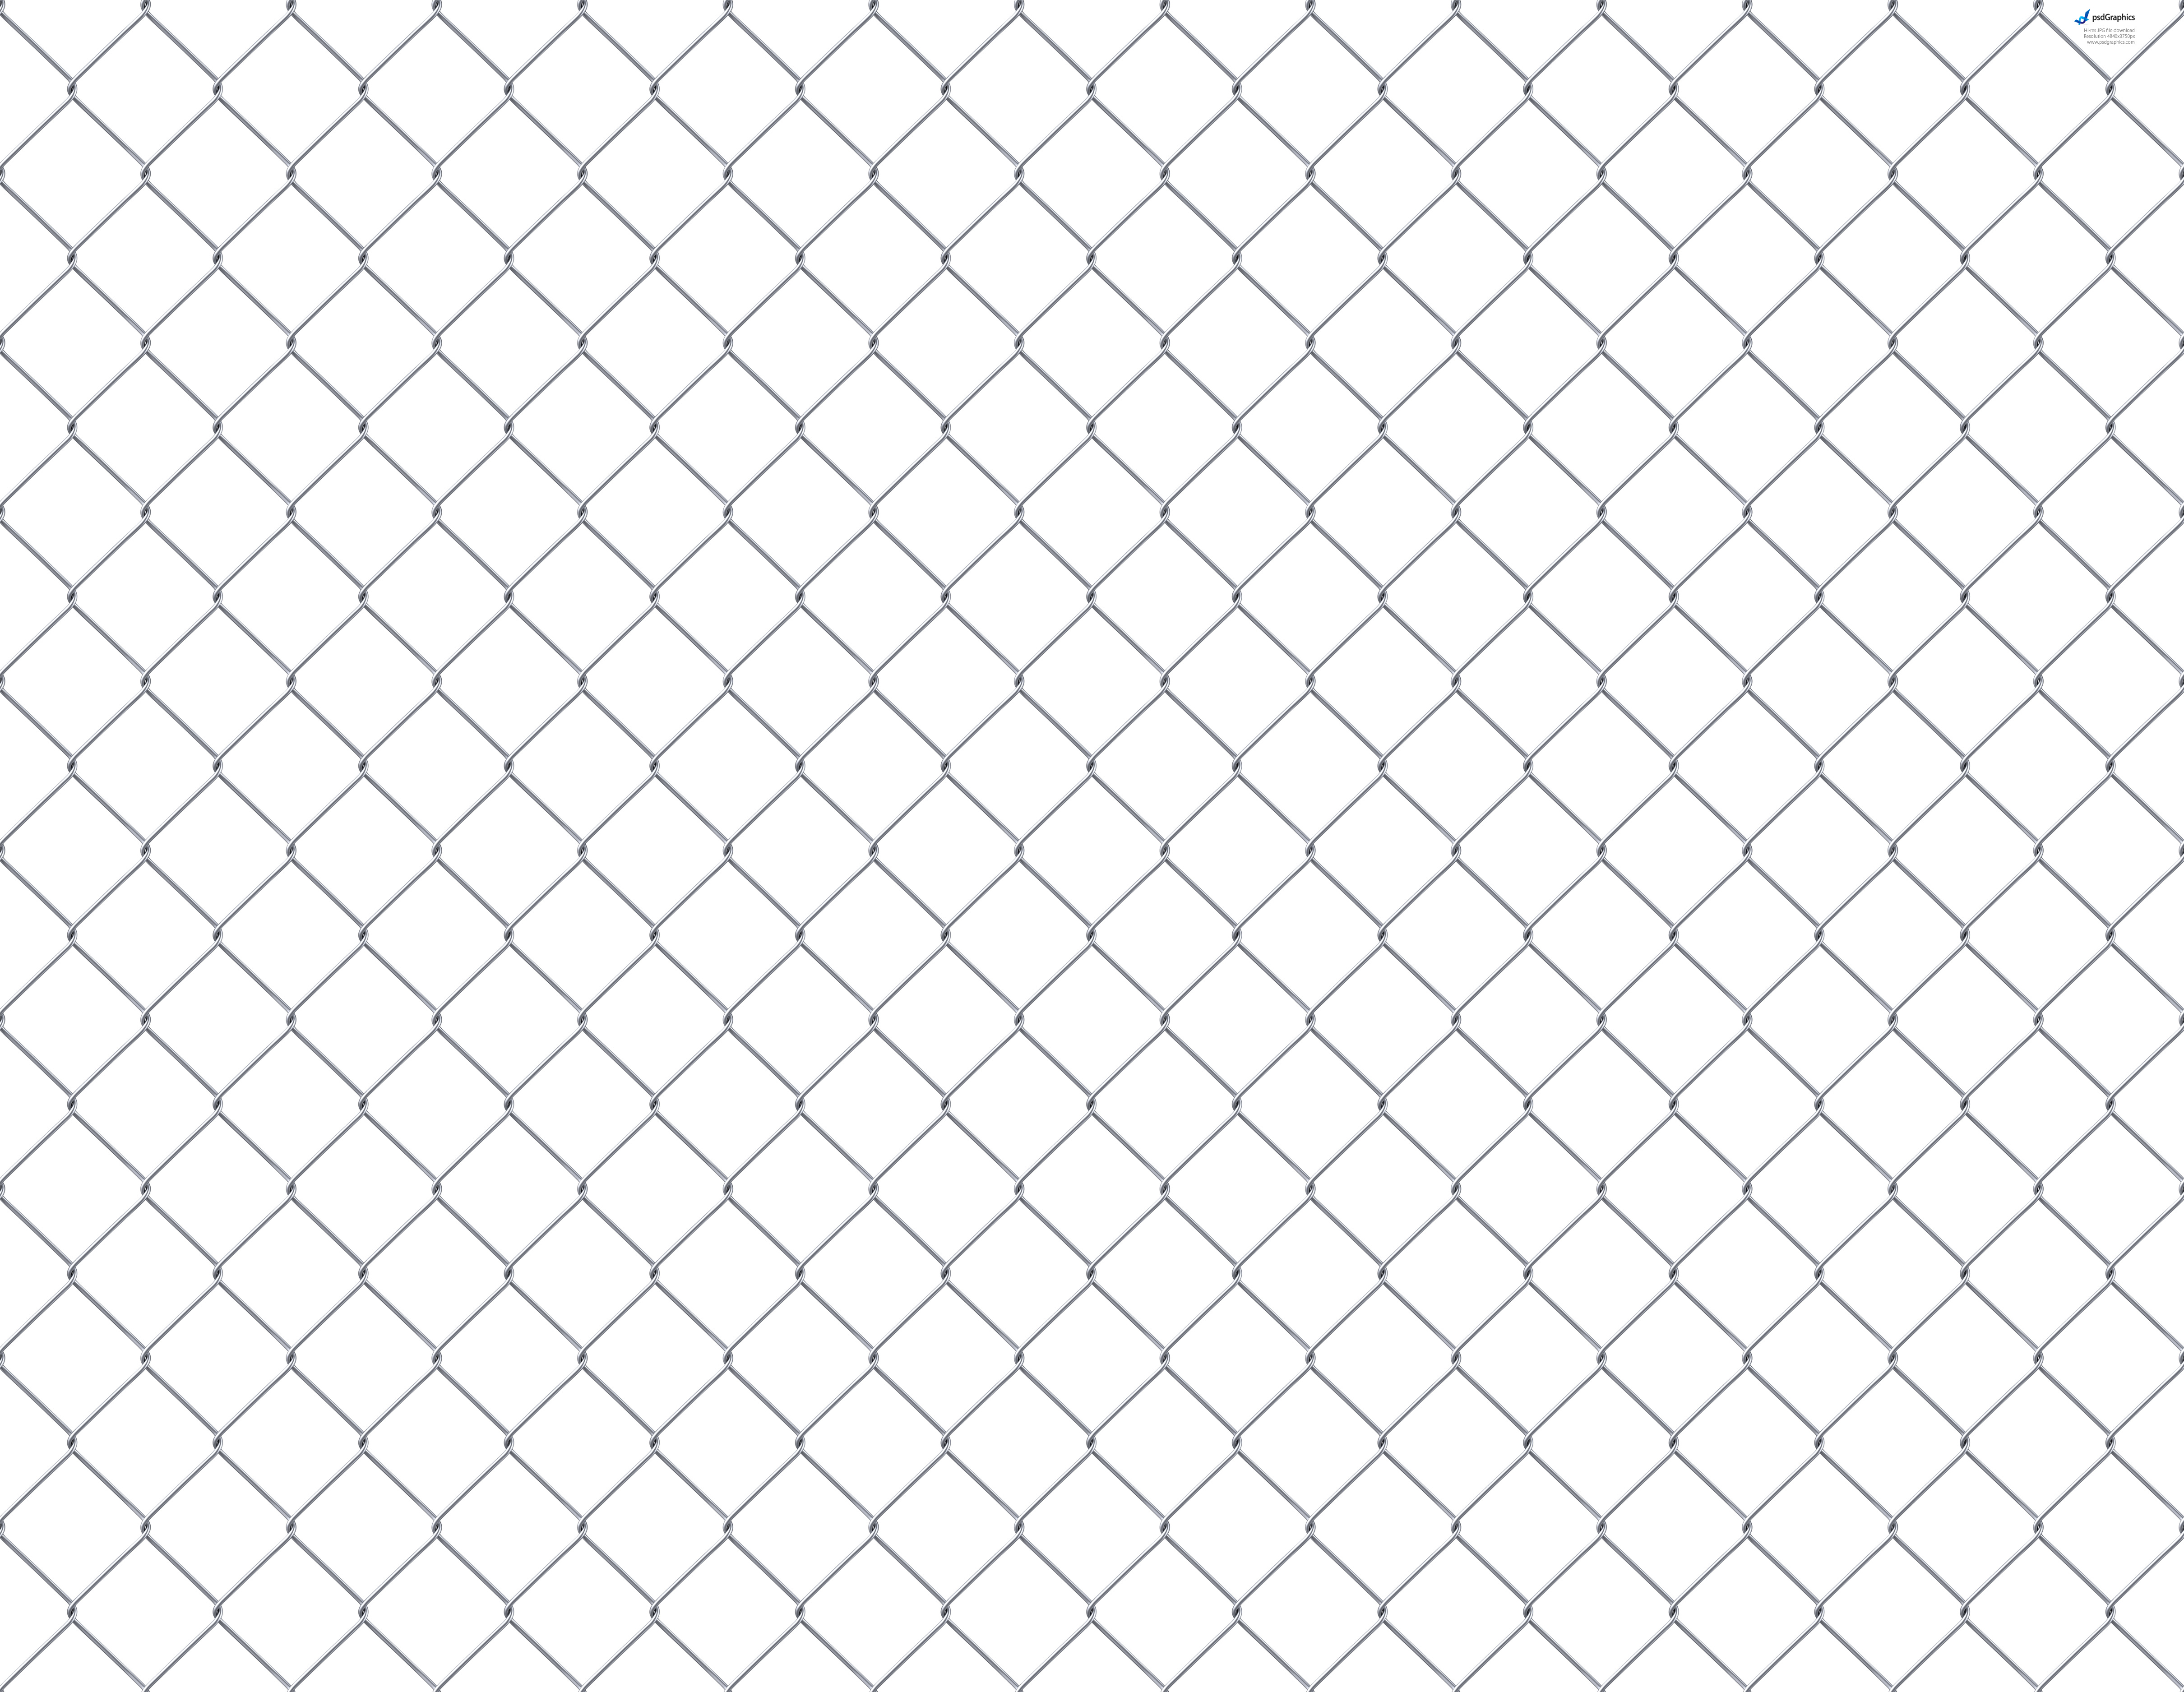 chainlink fence png fence png transparent fence images. | pluspng